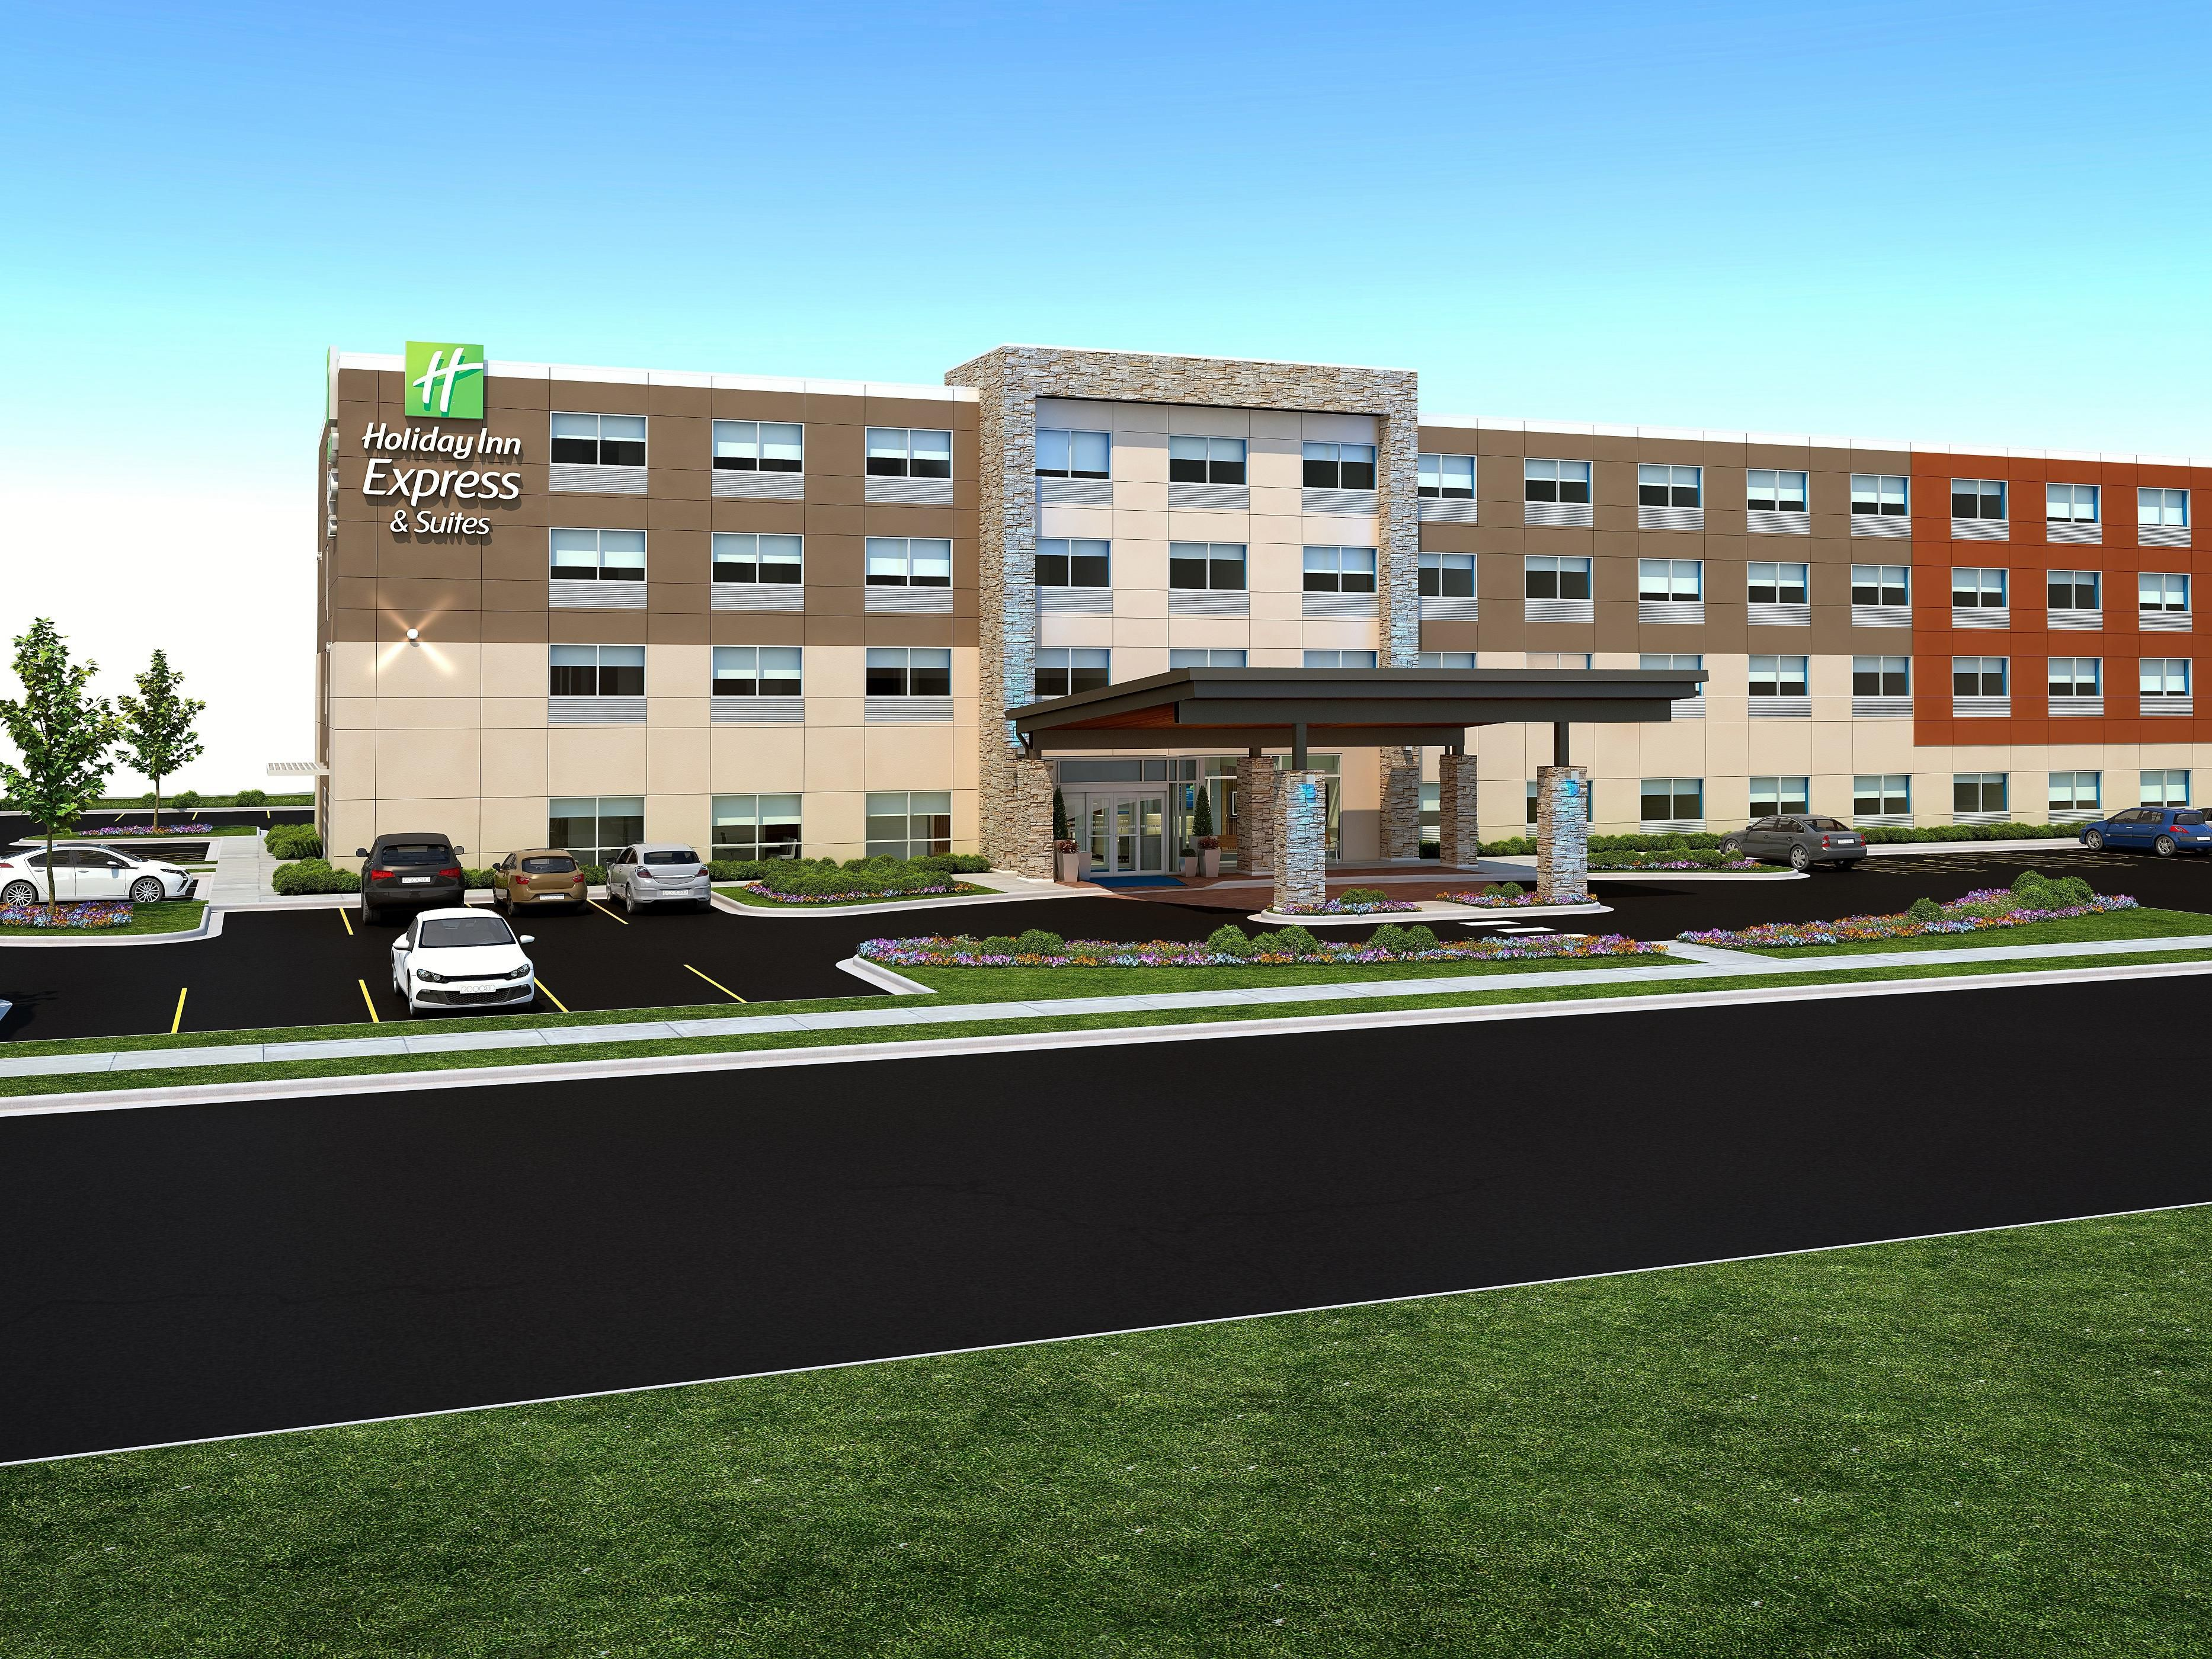 Holiday Inn Express Suites Bensenville O Hare In Chicago Illinois